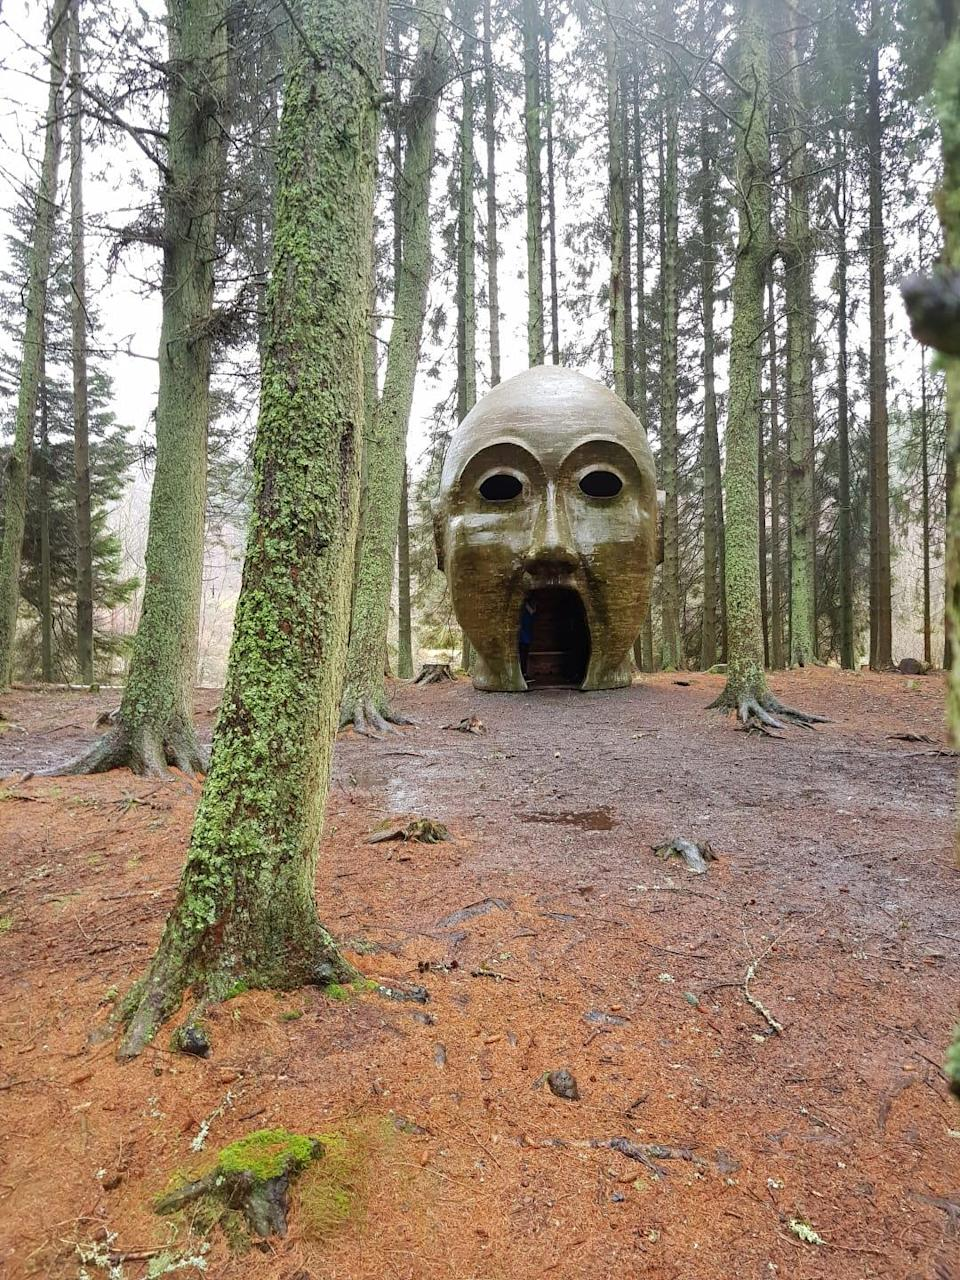 Sigmund Freud Silvas Capitalis (forest head) is a giant timber head located along the Lakeside WayDaniel Hall